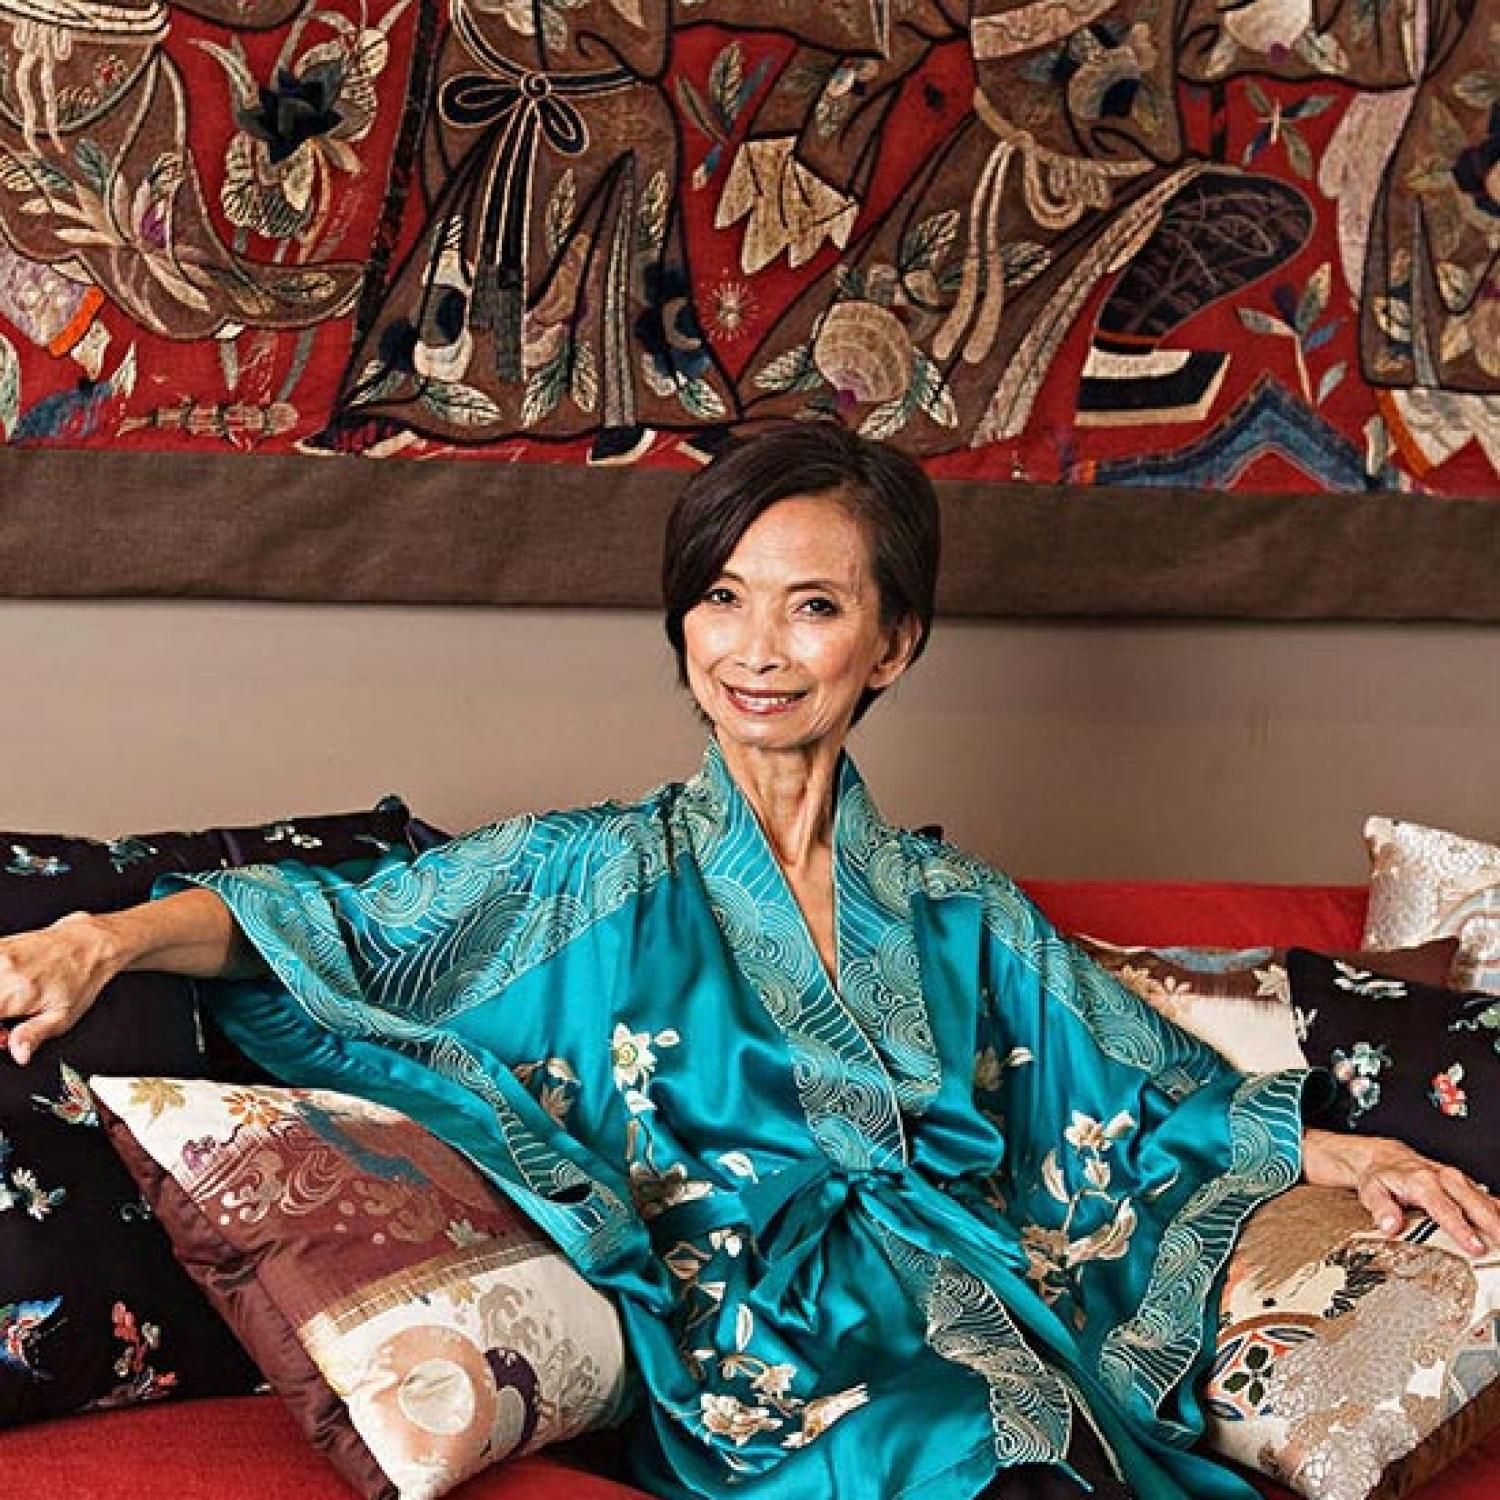 Tastemaker Fashion Designer Josie Natori Traditional Home